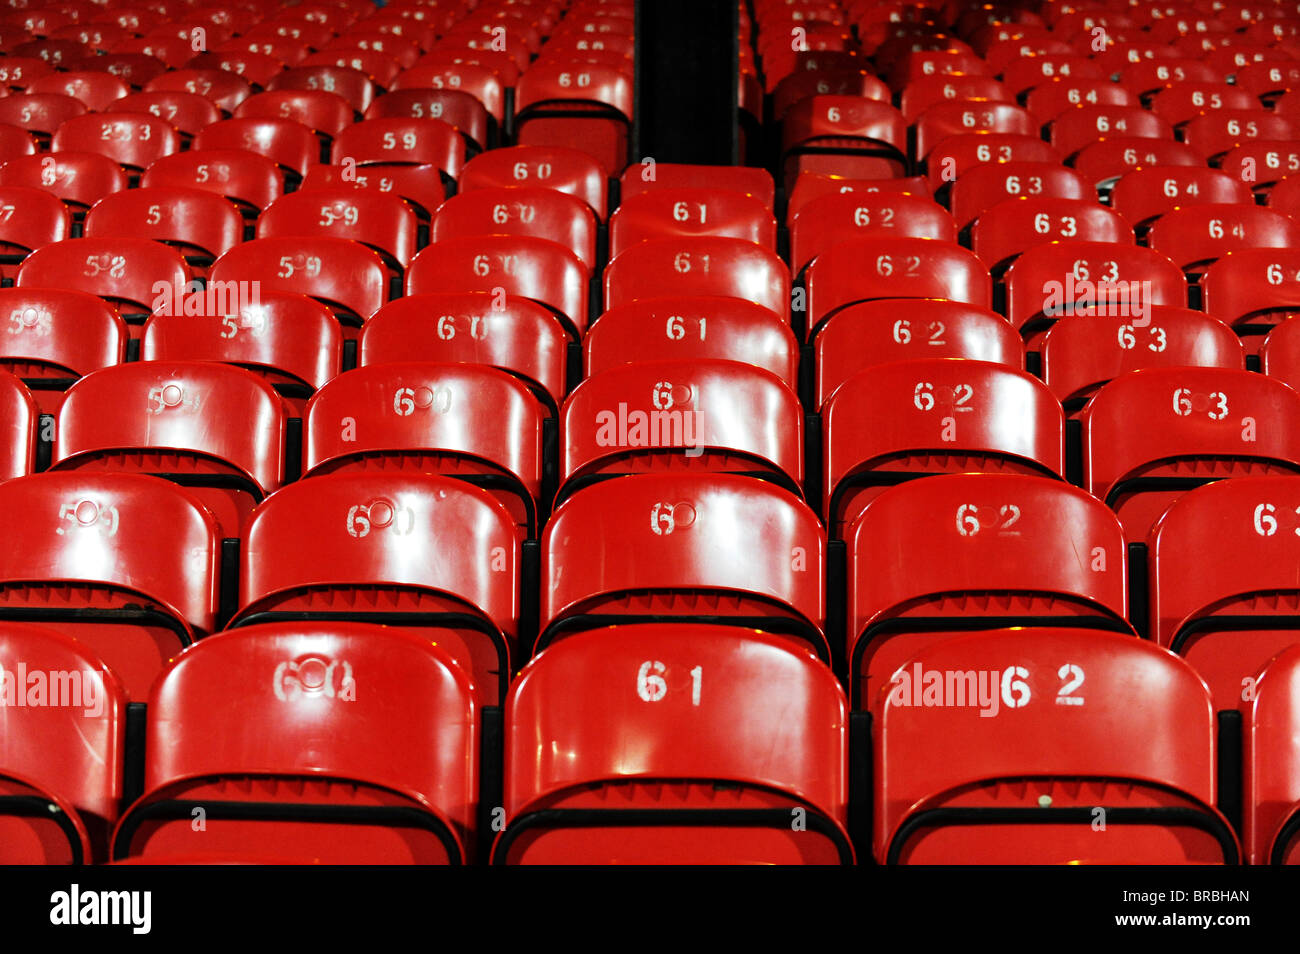 Red seats at a sports stadium. - Stock Image